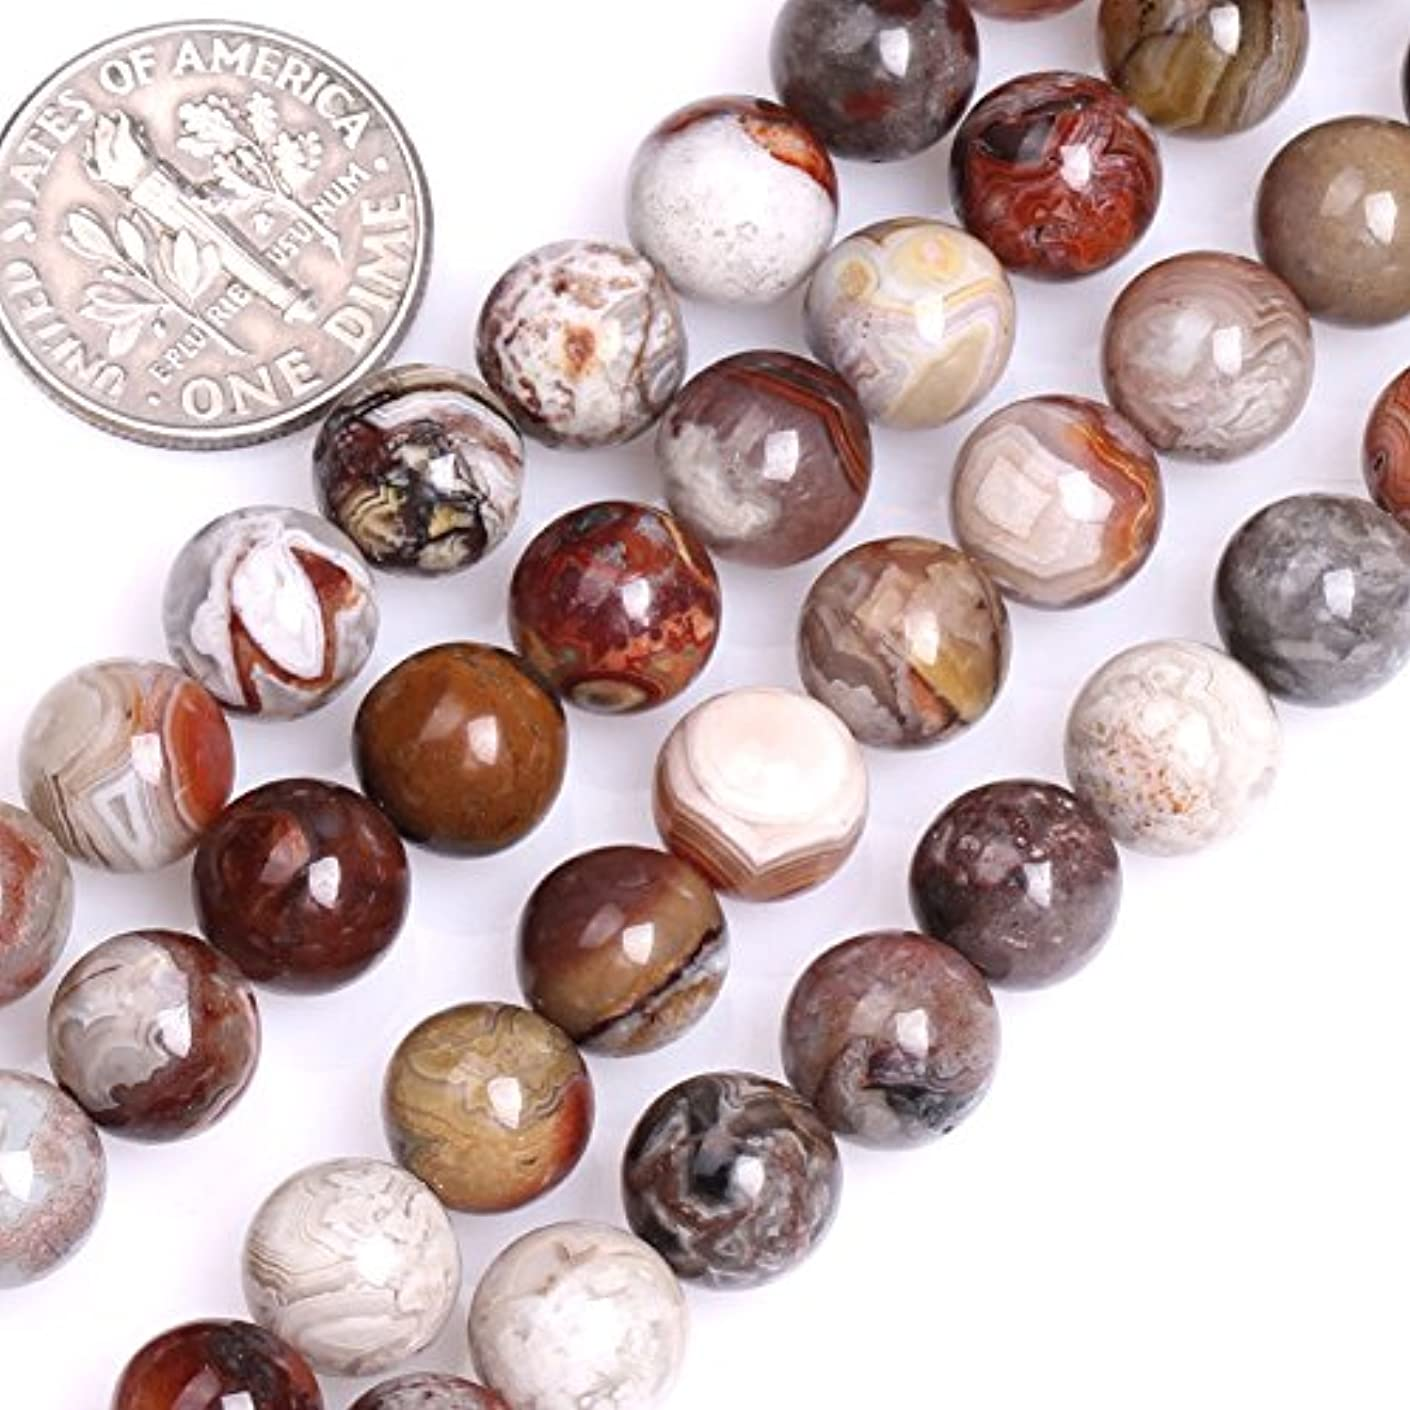 GEM-inside Natural Genuine 8mm Round Dark Red Mexico Laguna Lace Agate Beads for Jewelry Making Strand 15